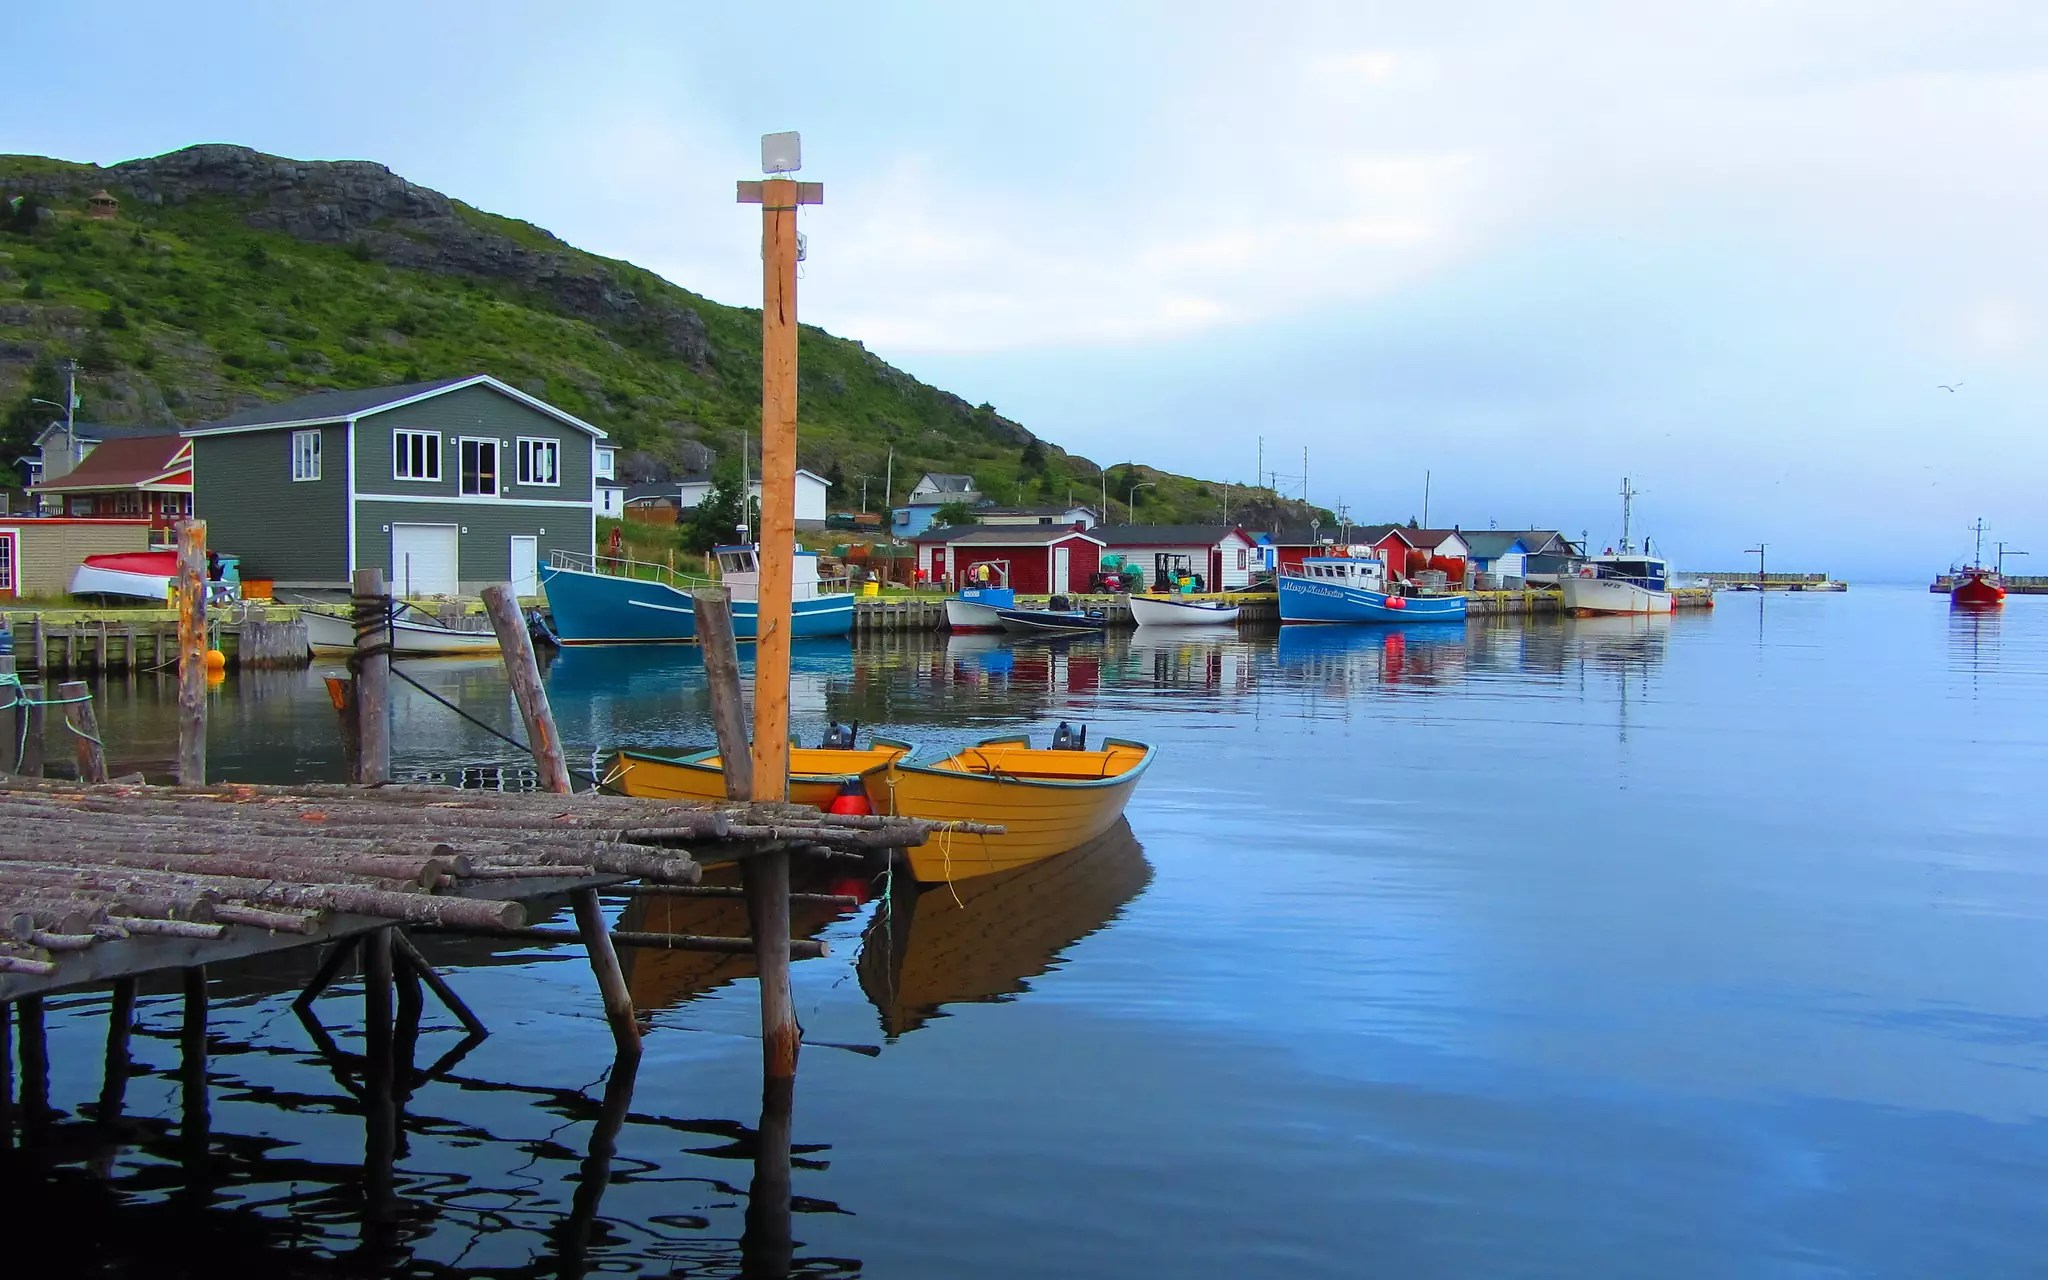 Petty Harbour, NL - photo by Loozrboy under CC BY-SA 2.0